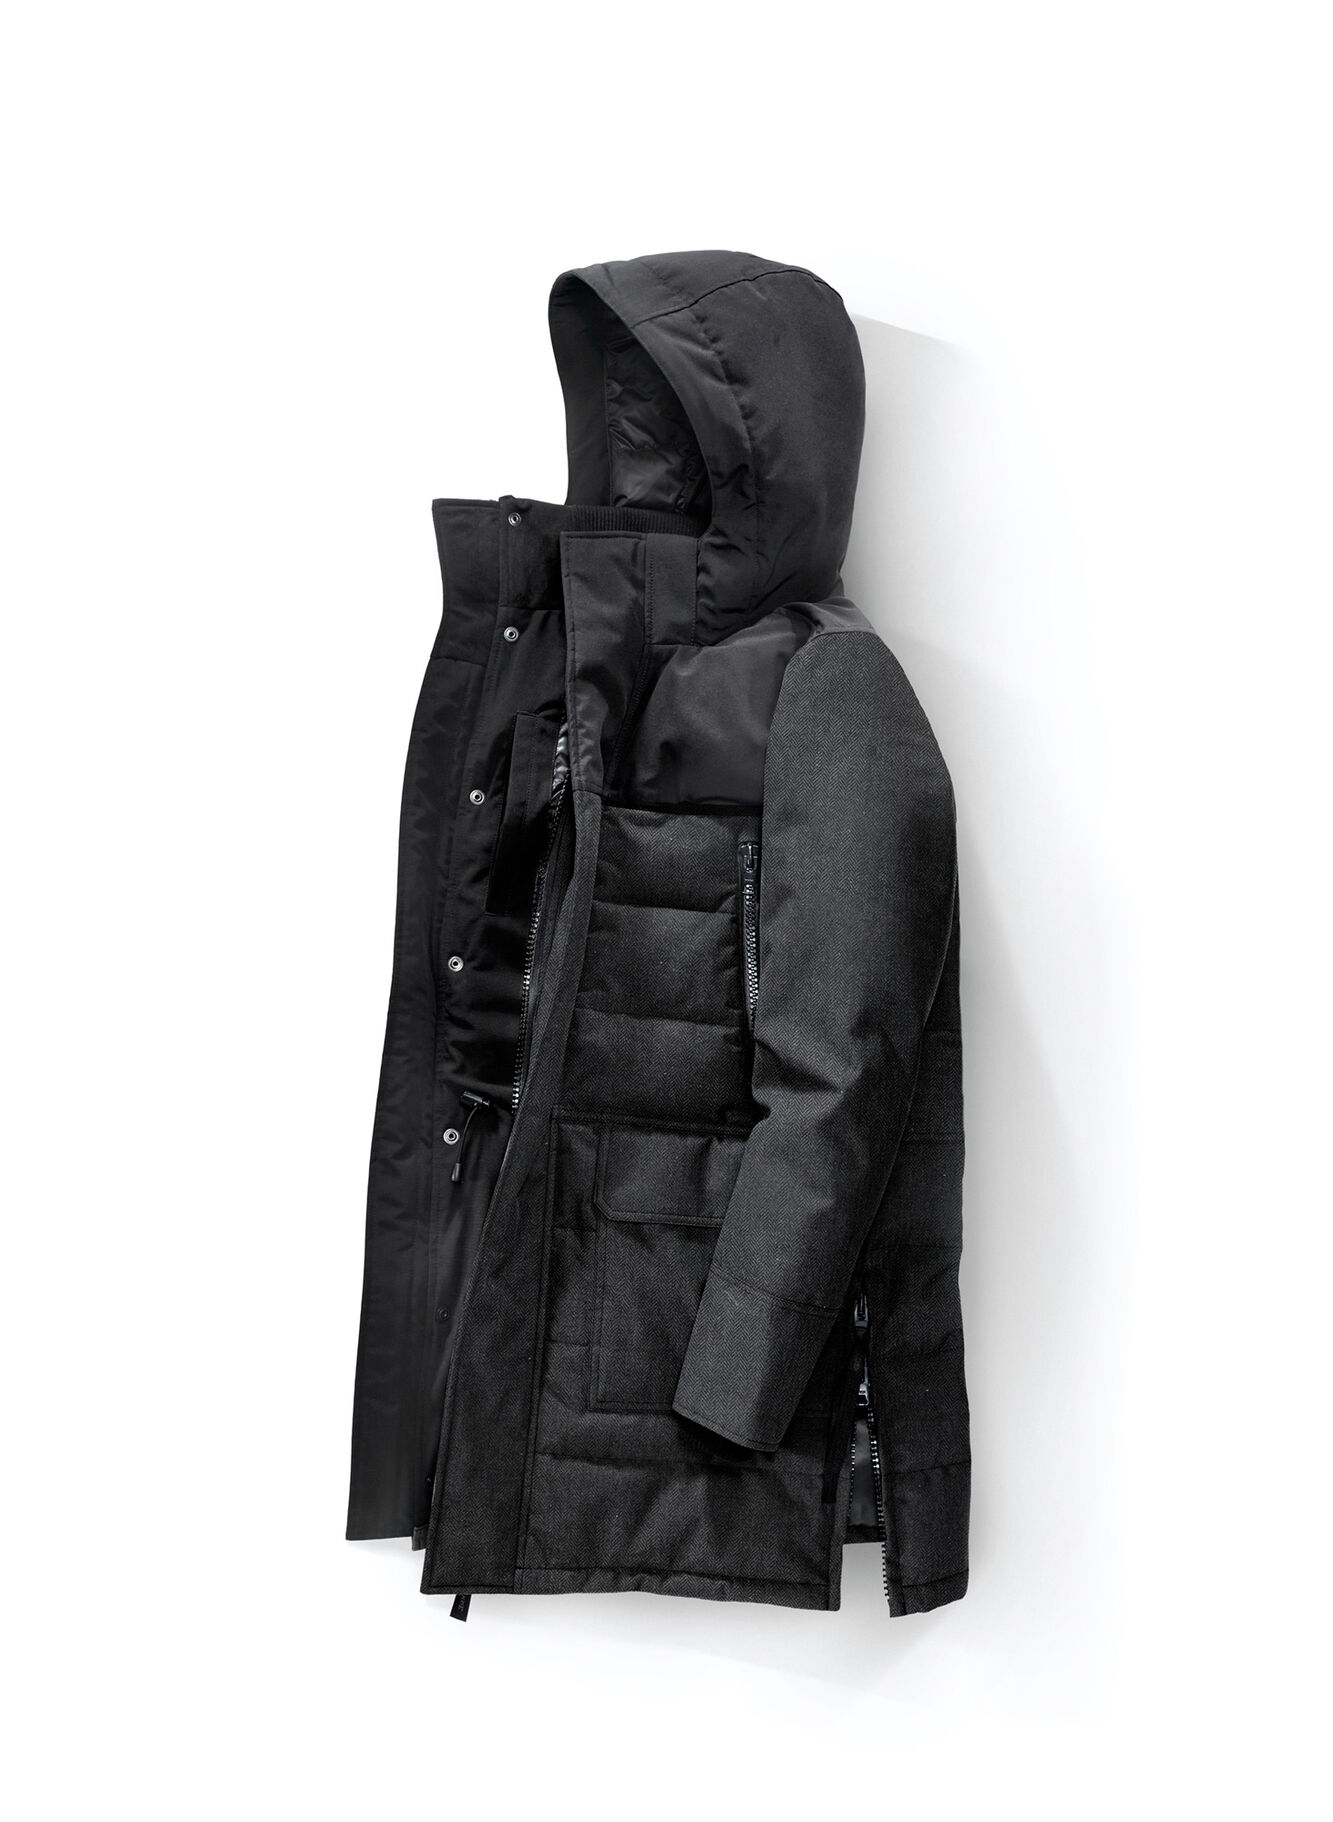 Canada Goose toronto outlet discounts - Men's Parkas | Expedition | Mountaineer | Canada Goose?